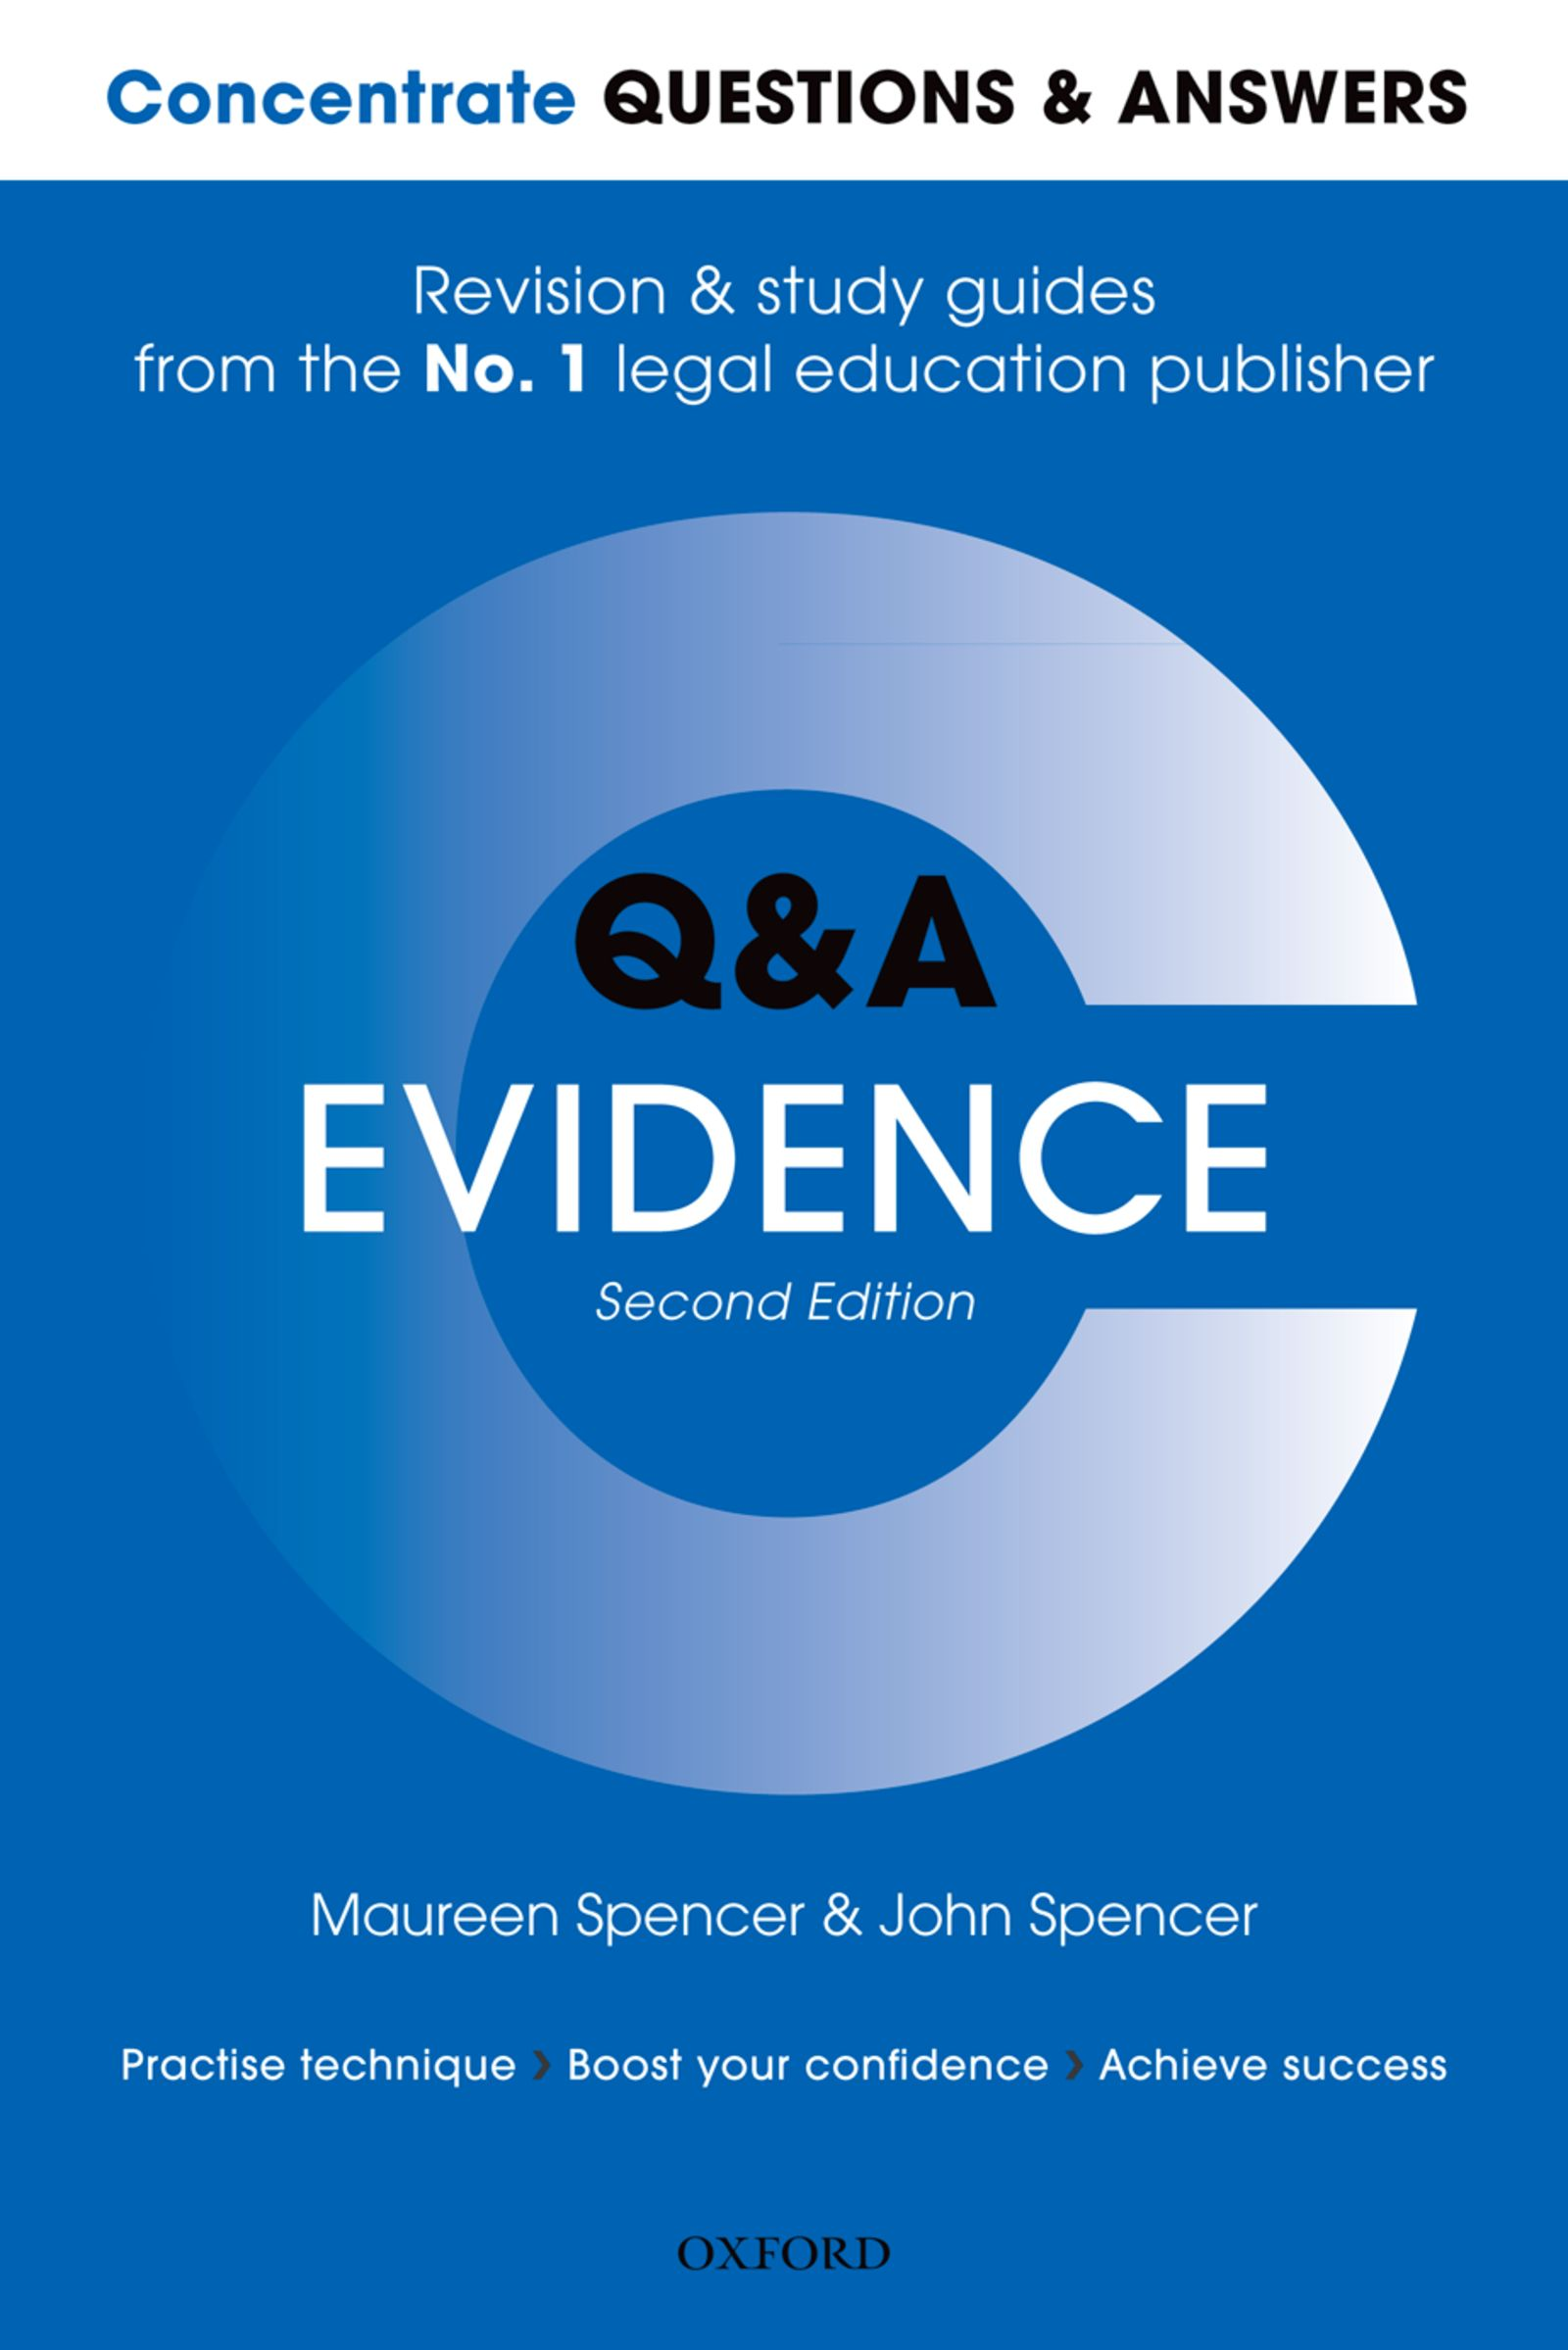 Q&A Evidence 2e Student resources